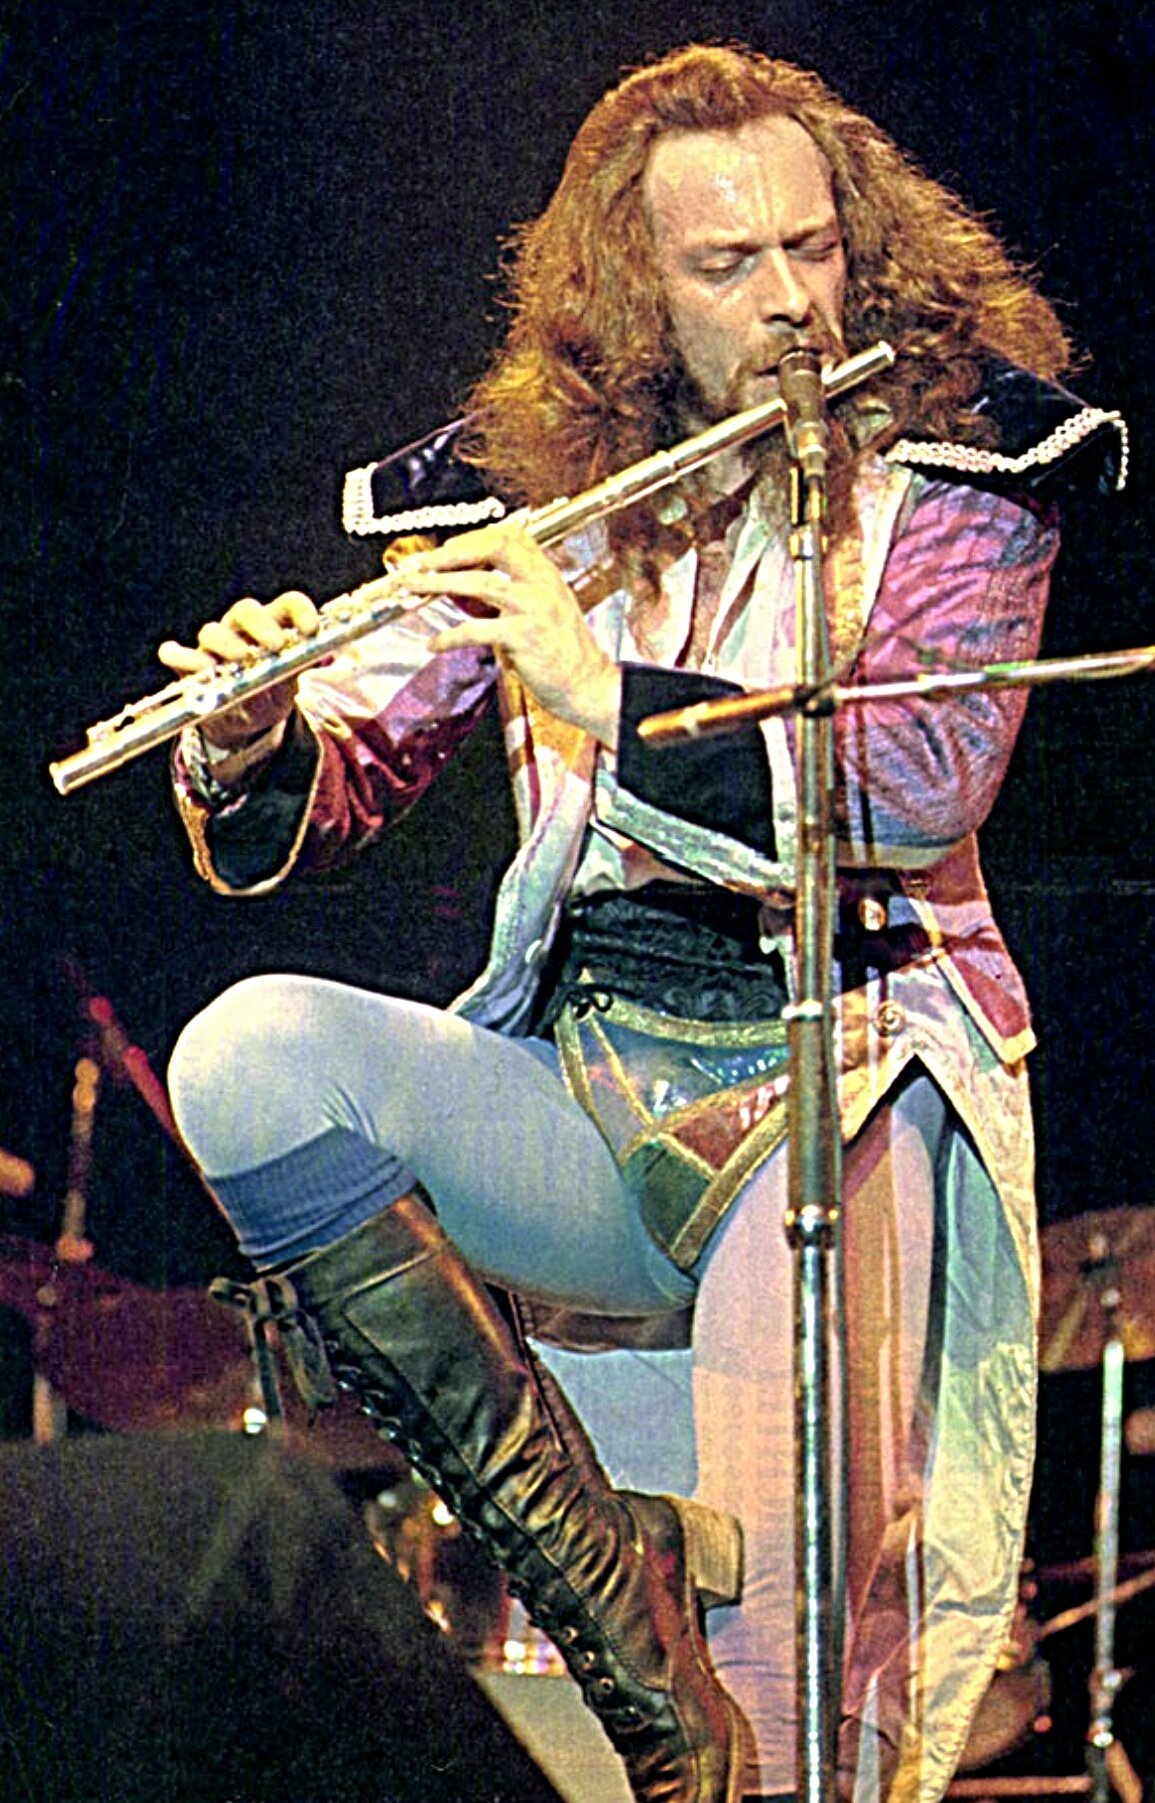 Happy birthday to multitalent Ian Anderson who turns 70 today! Time to spin some JethroTull again